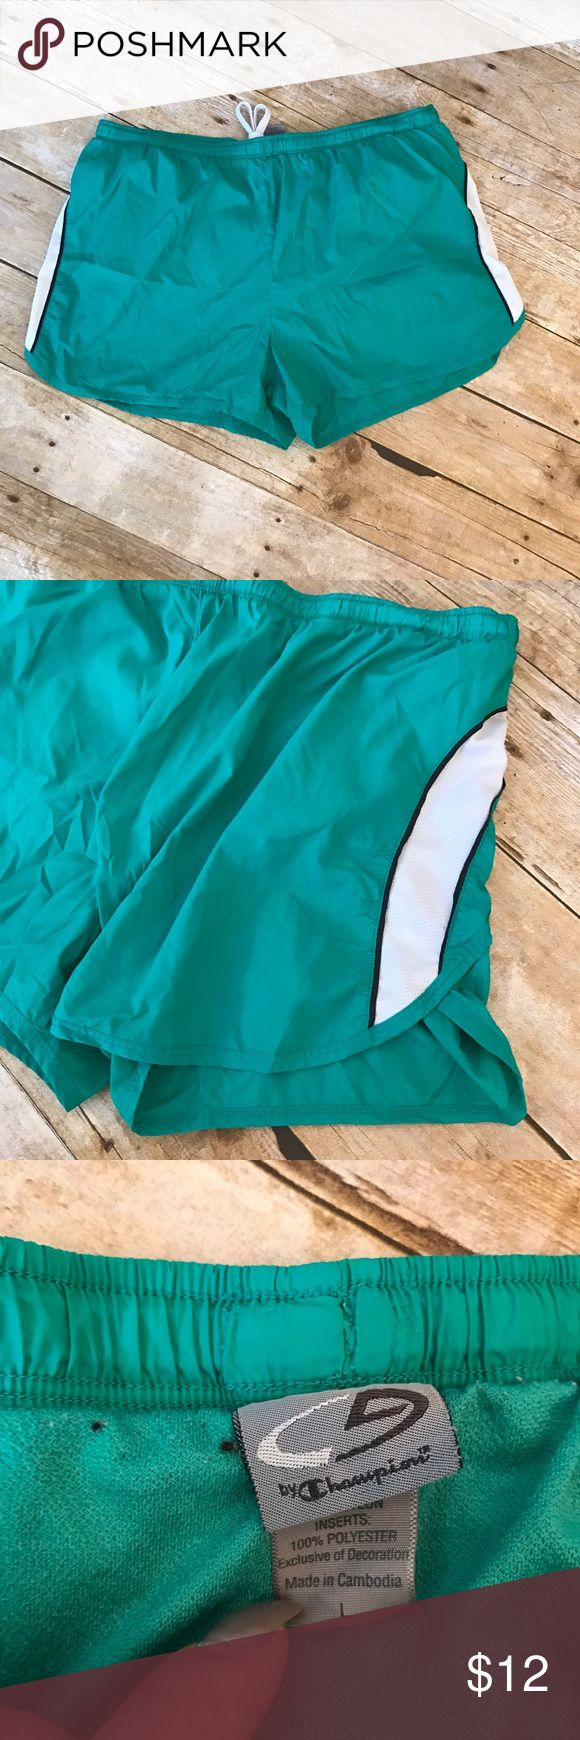 🌻 Champion running shorts Size Large workout wear Excellent condition - size large - running/ workout wear - turquoise color - CHAMPION BRAND - size LARGE -‼️🌟NEXT DAY SHIPPING🌟‼️ Champion Shorts